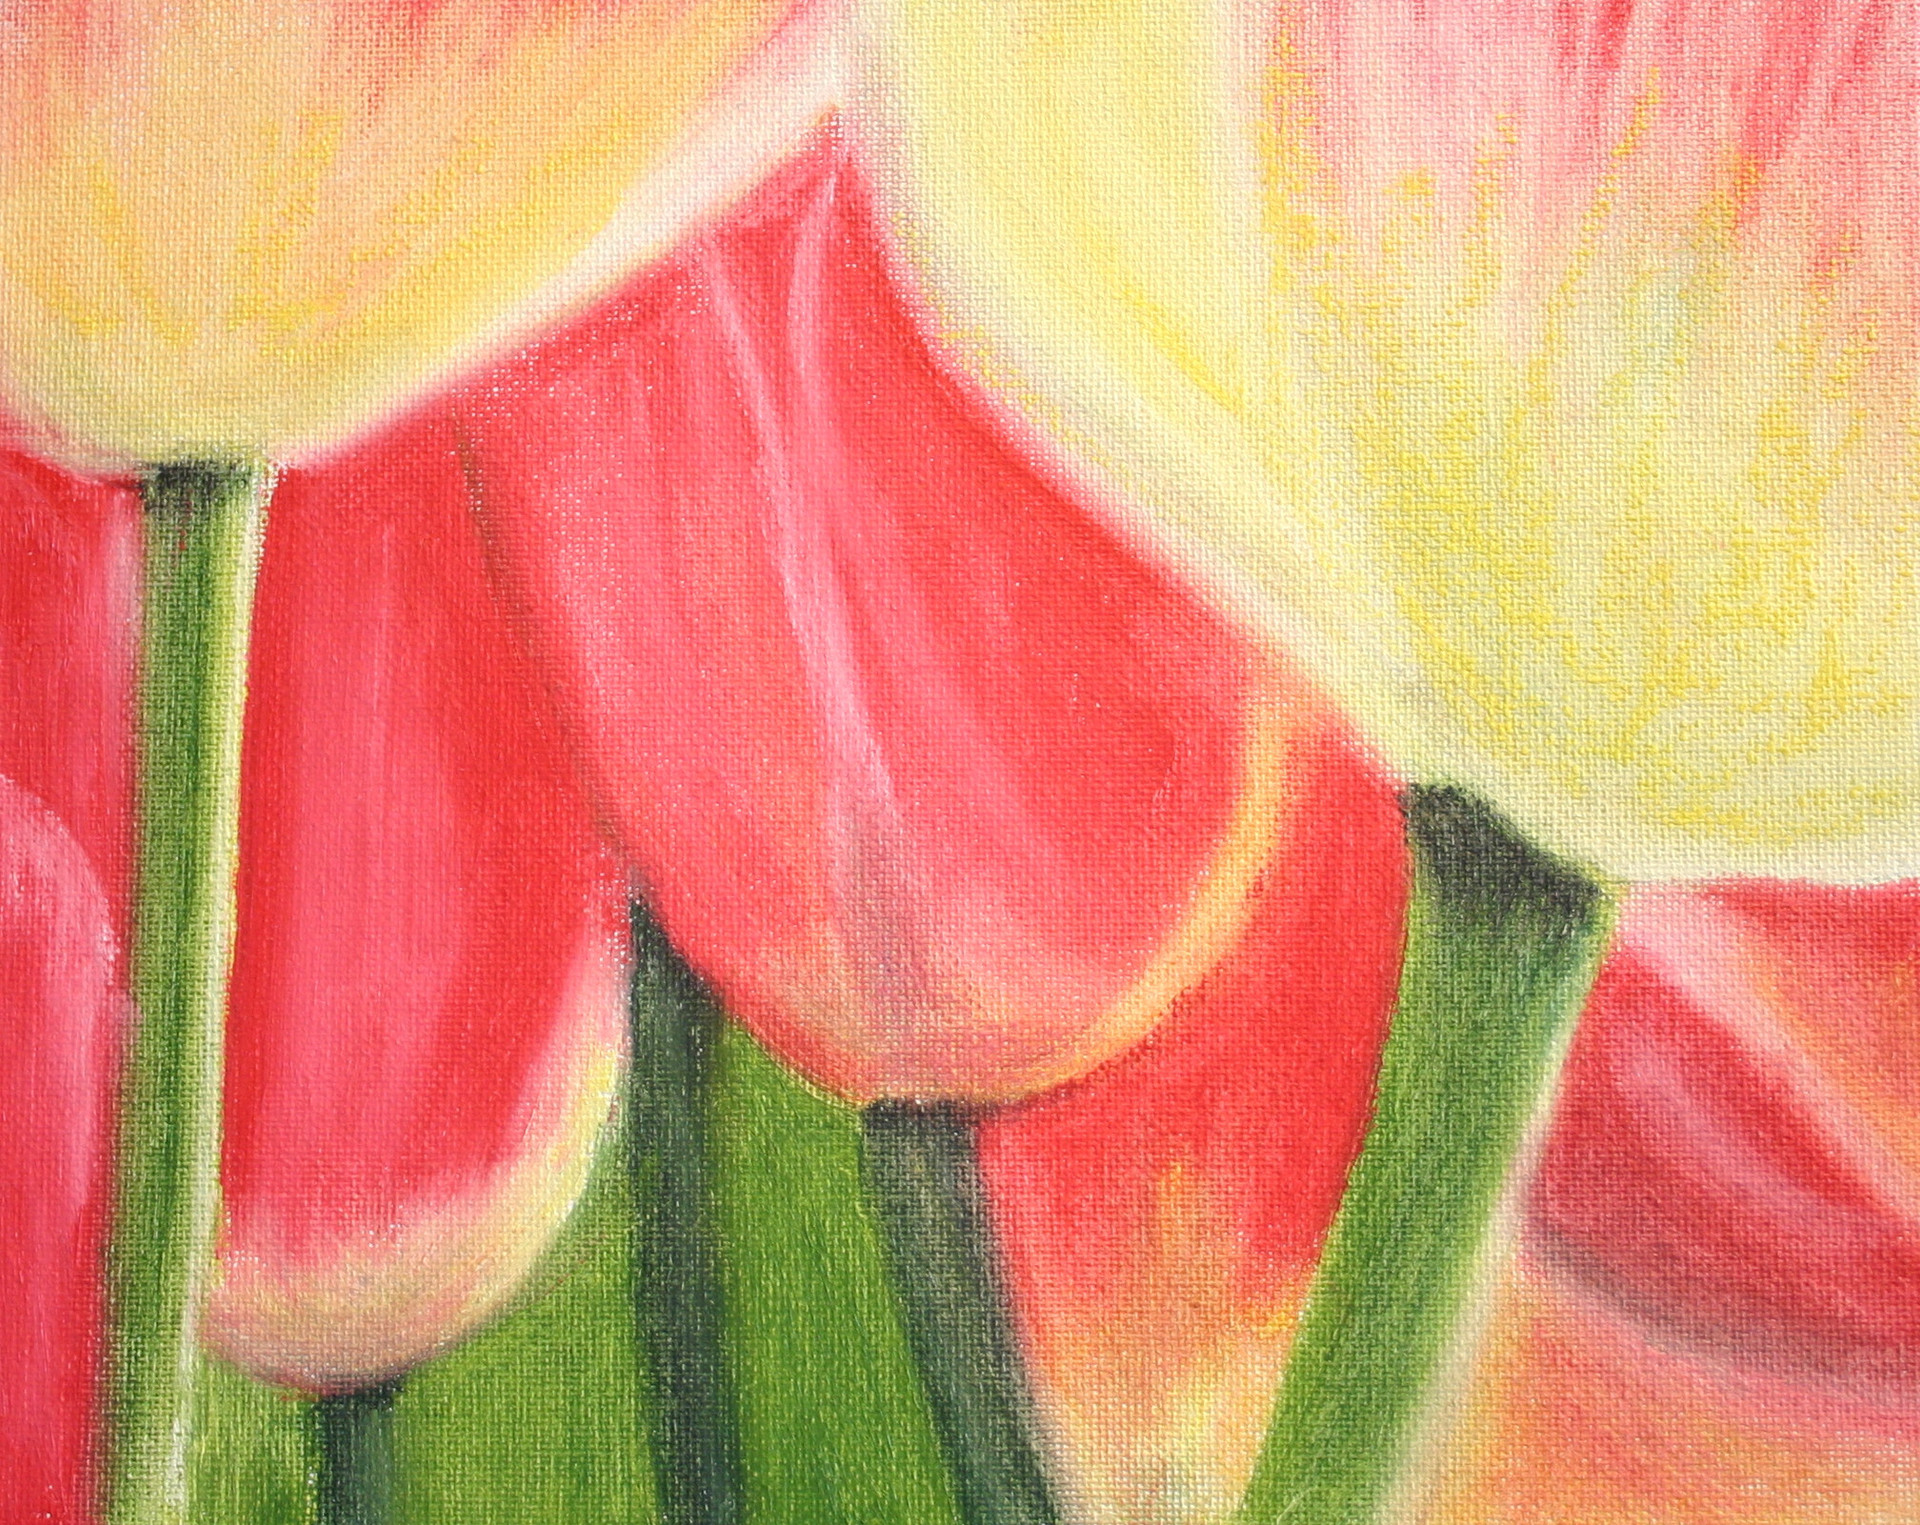 Tulip Spring 8 x 10 - Oil Stick - not for sale